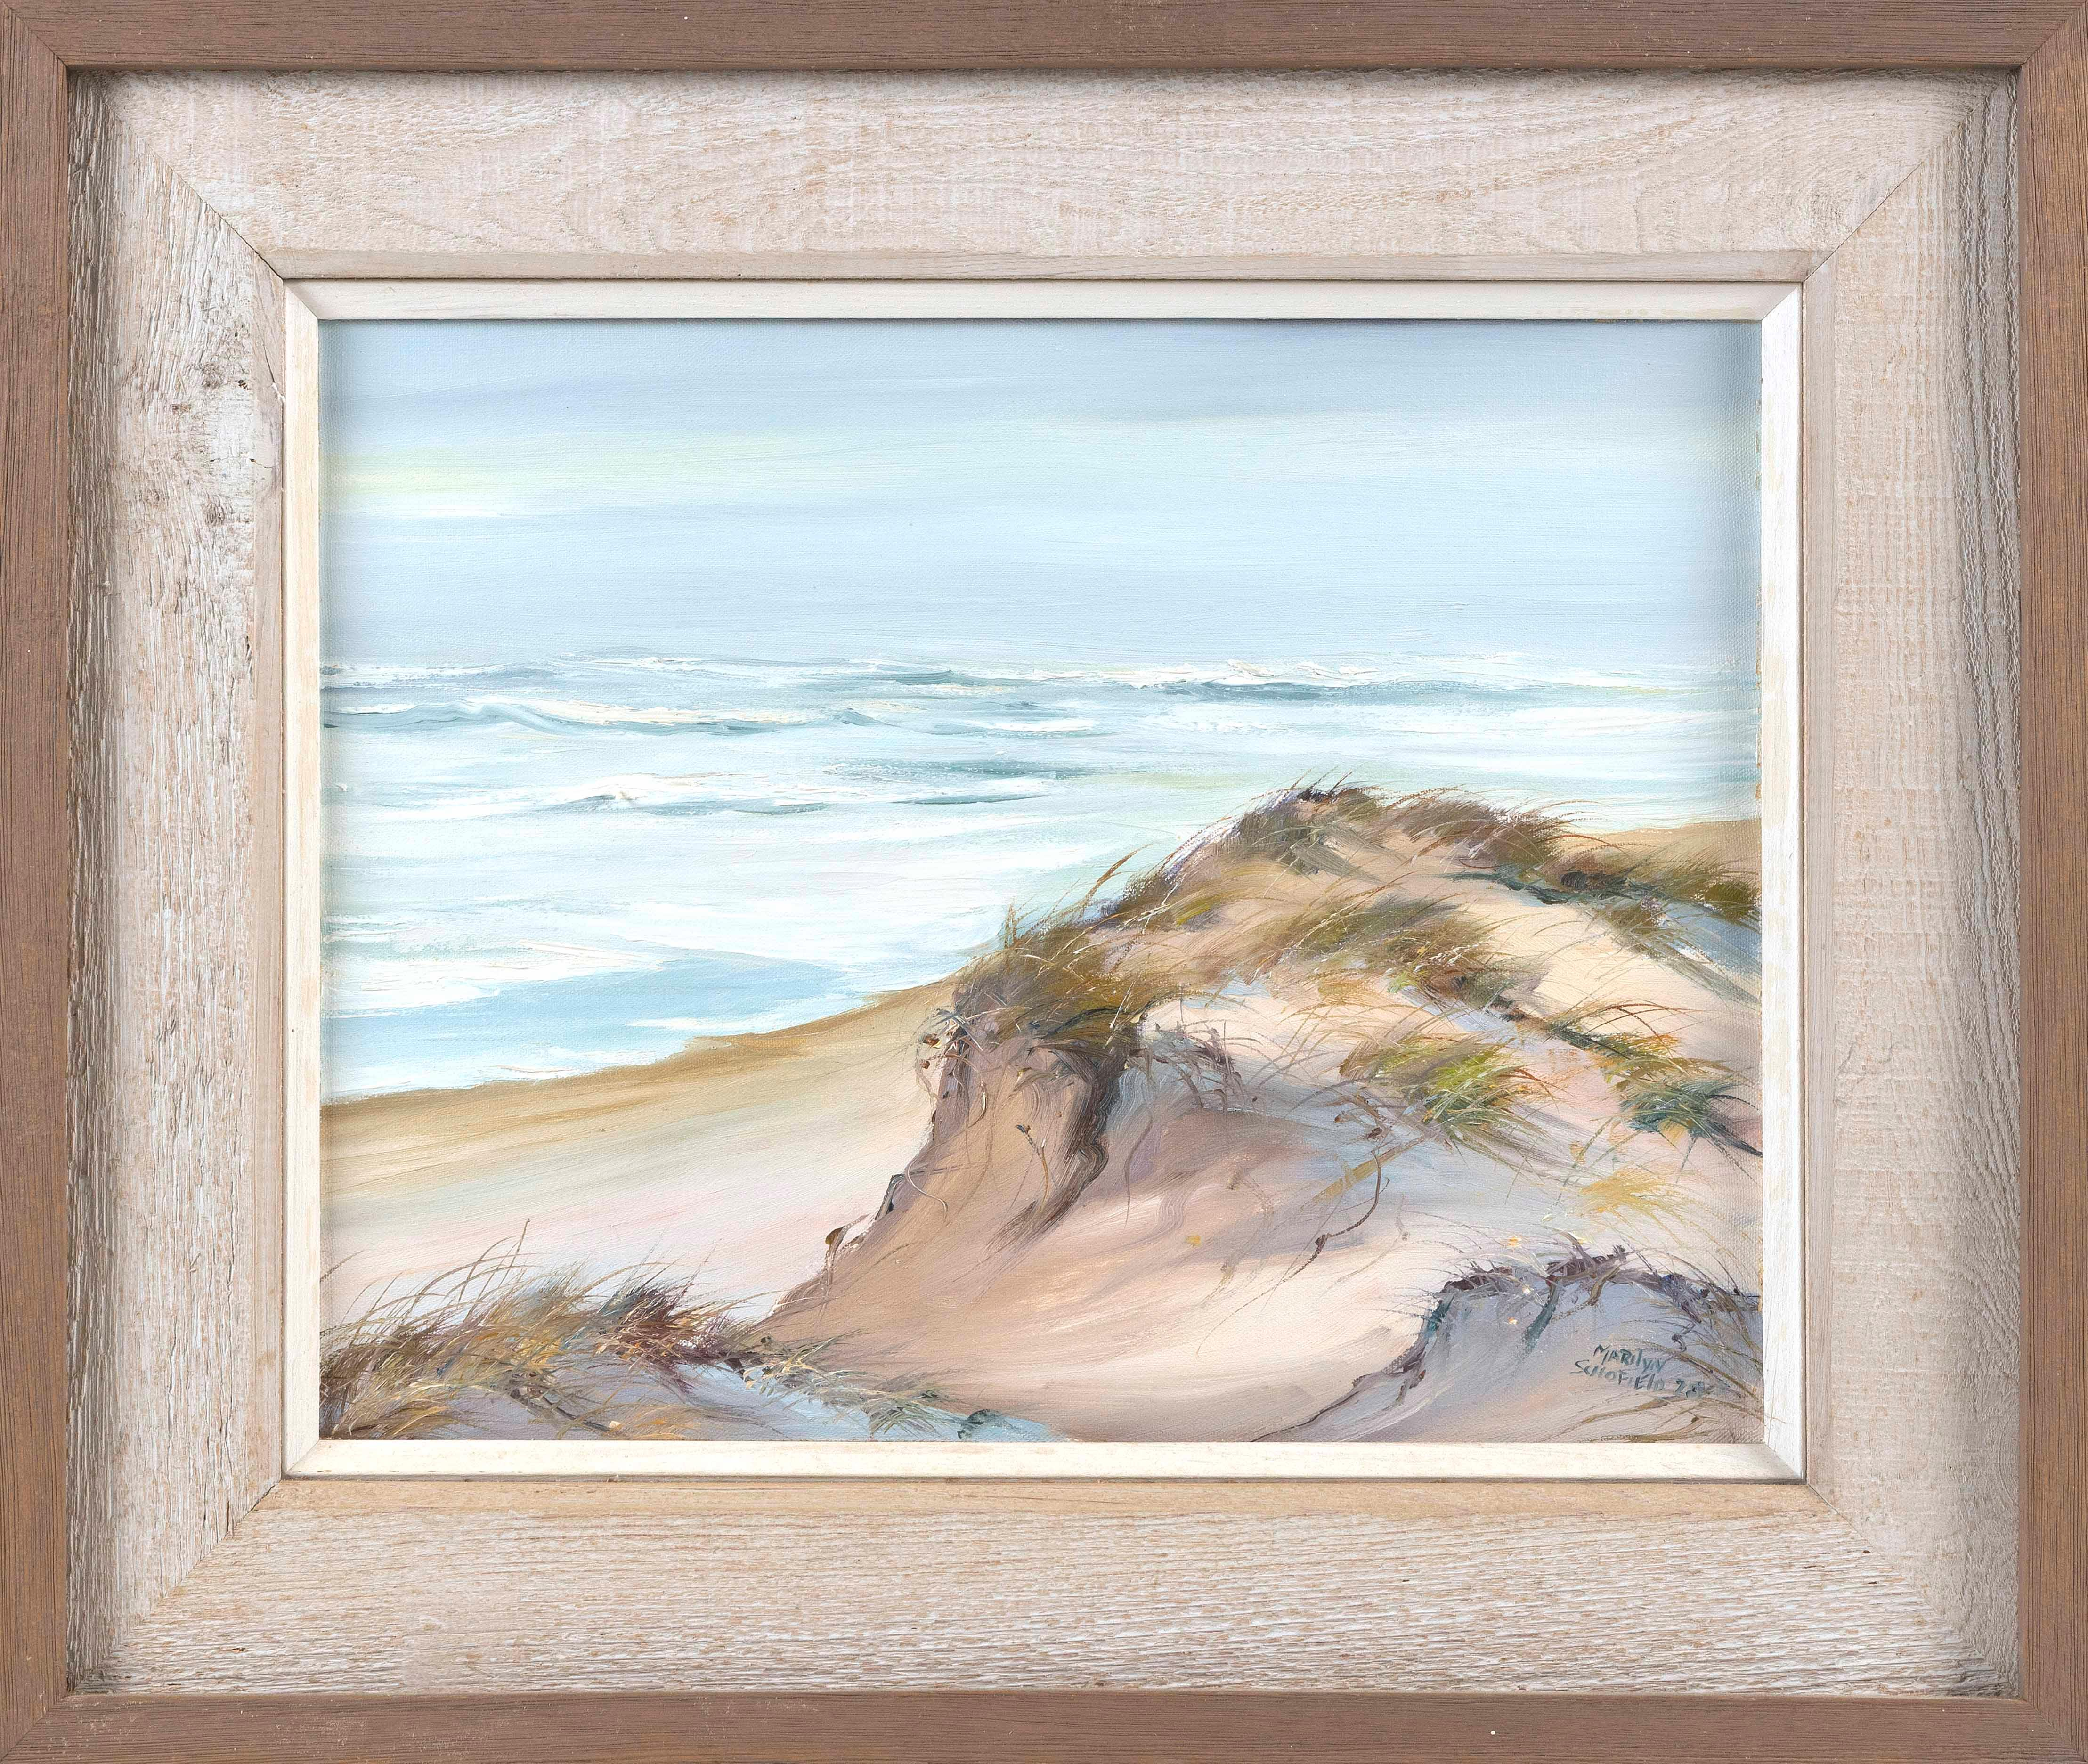 """MARILYN CHACE (PETERS) SCHOFIELD (Massachusetts, 1936-2011), Nauset dunes., Oil on canvas, 14"""" x 18"""". Framed 22"""" x 26""""."""